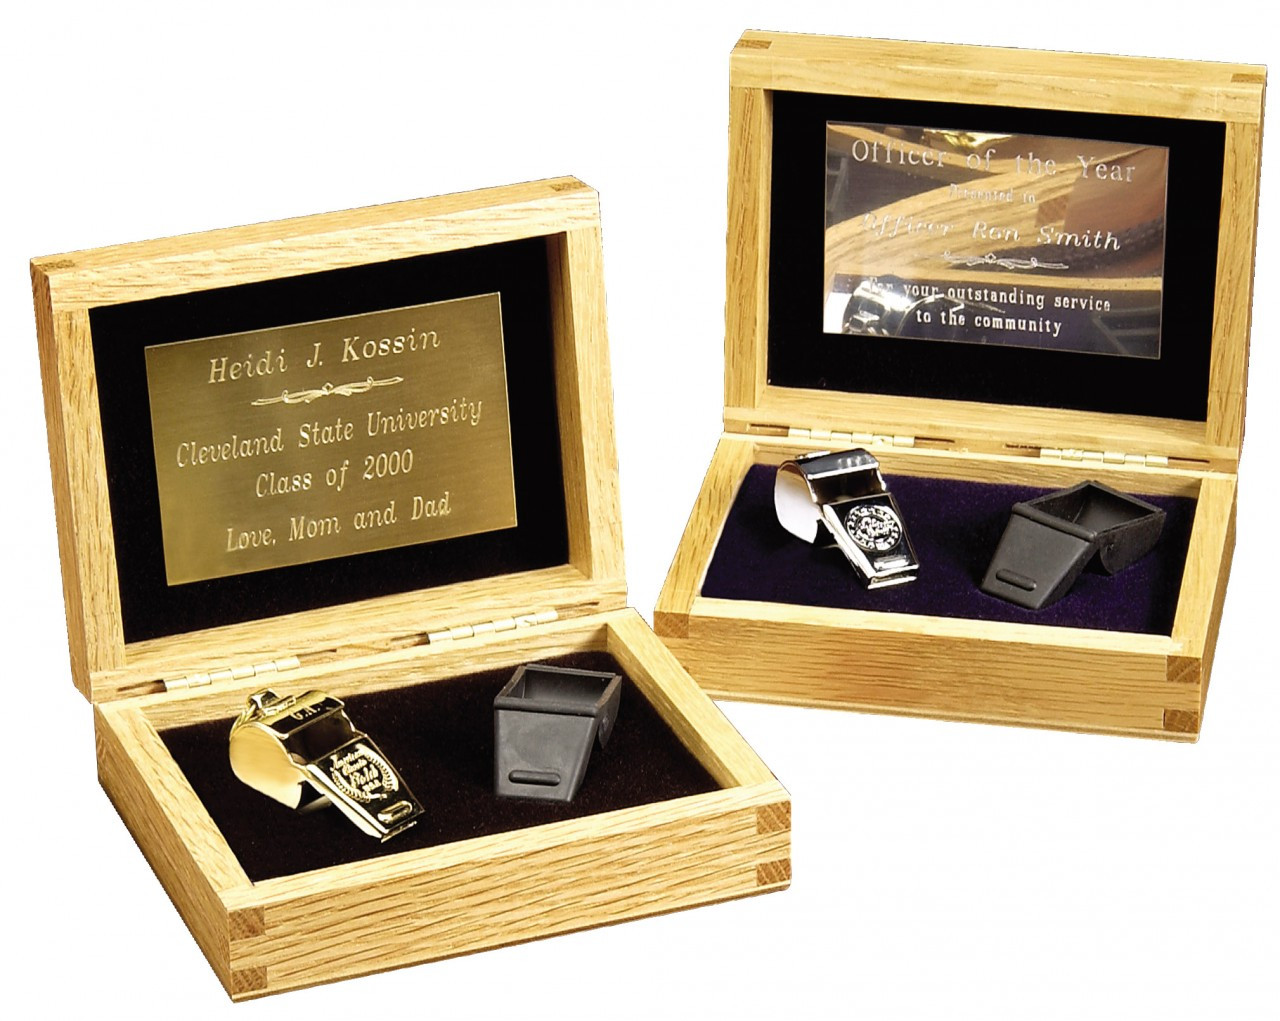 American Spirit Whistle Gift Sets Engraved. See more images